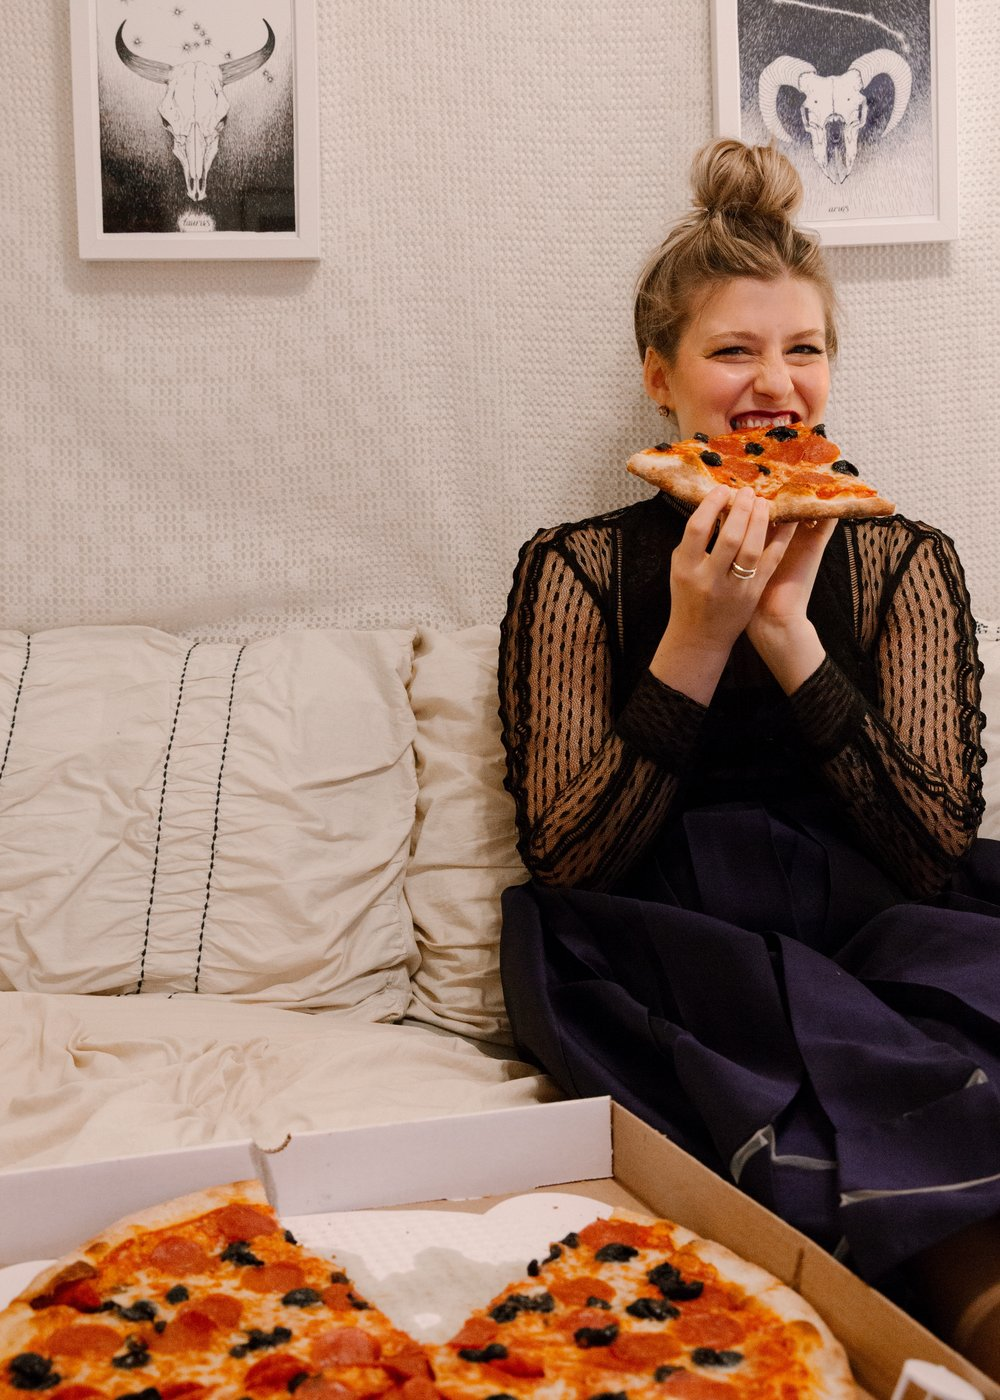 me eating pizza, photo by Lindsay Brown